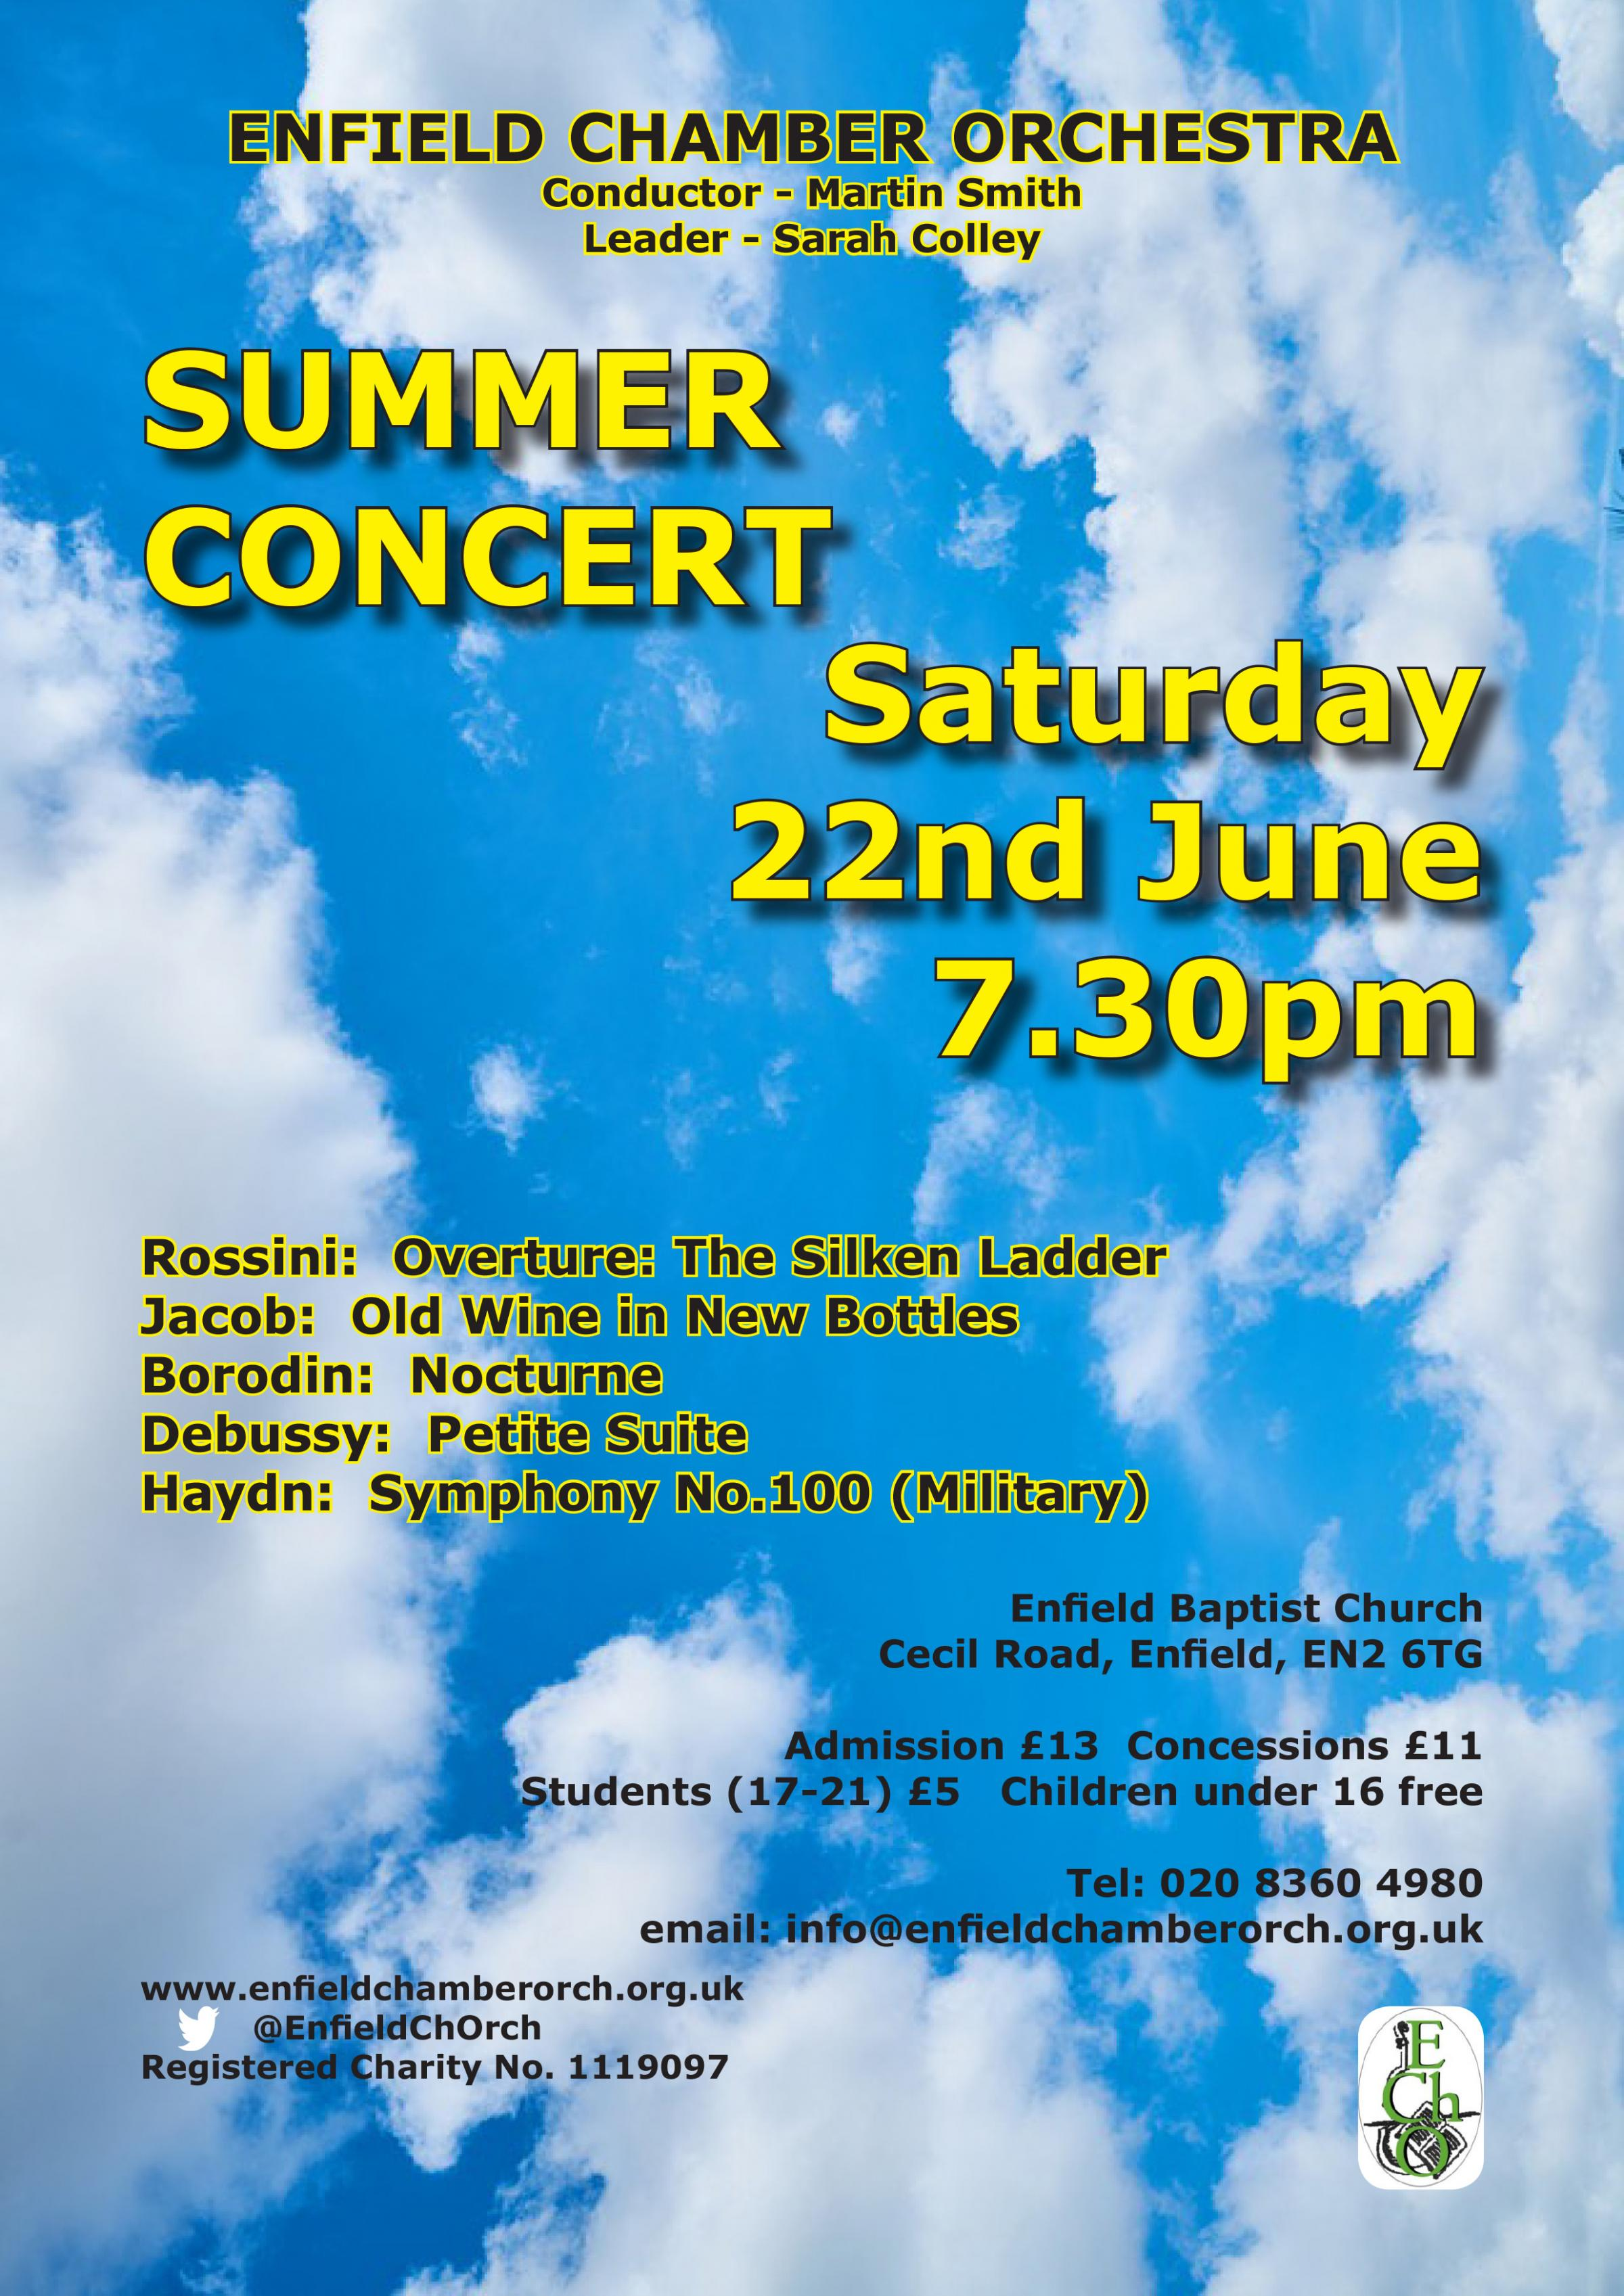 Enfield Chamber Orchestra Concert